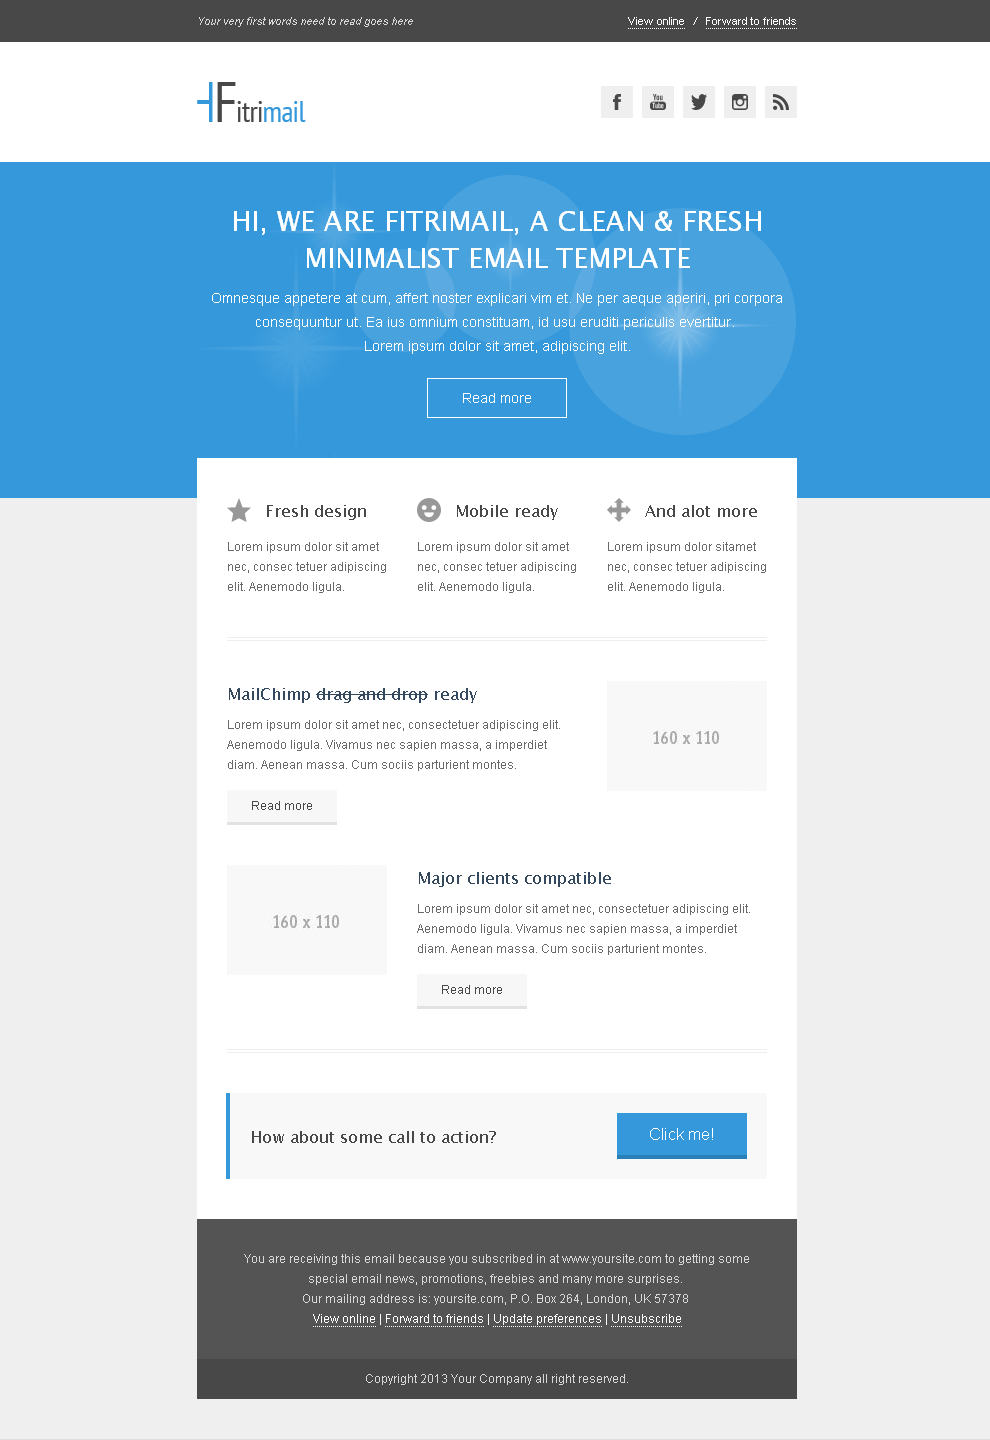 design-email-template-633.png (990×1440) | Web | Pinterest